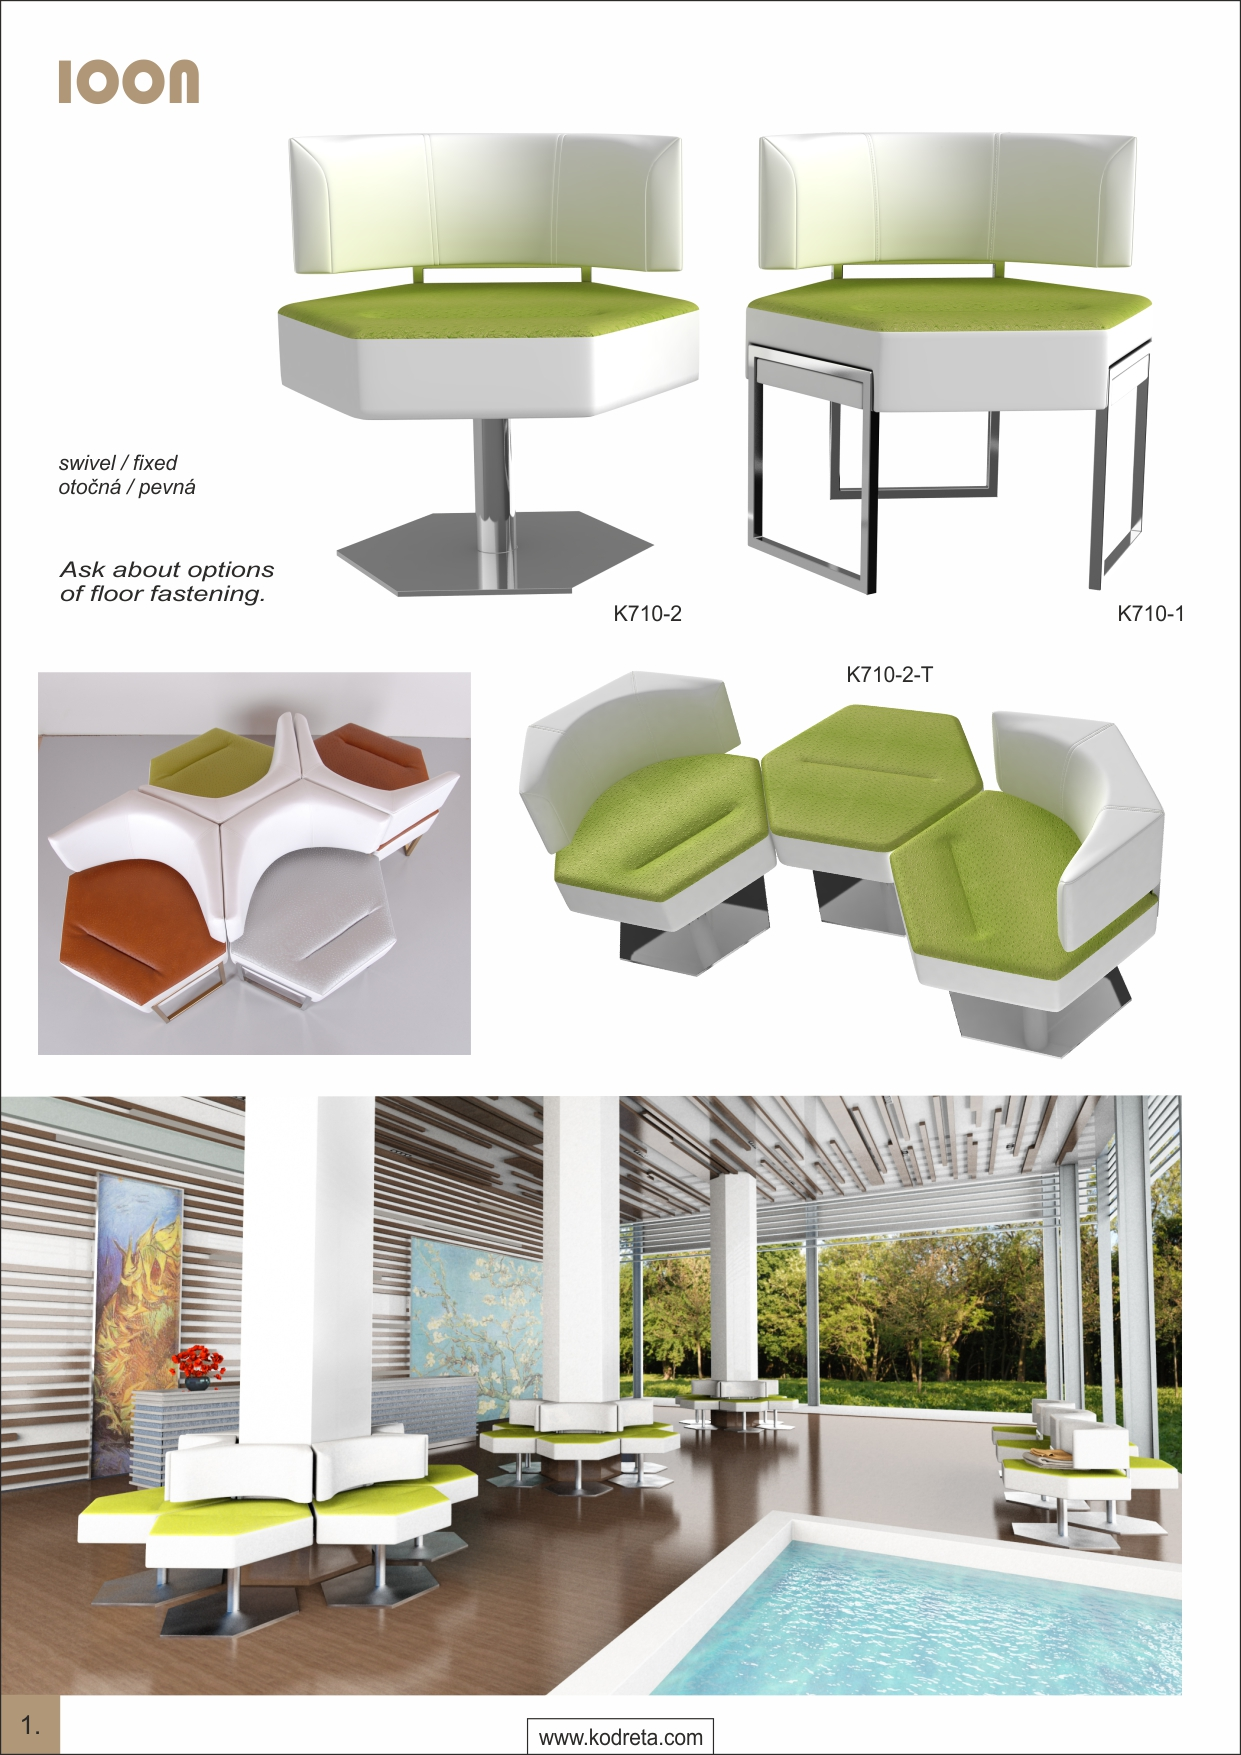 Kodreta Furniture Products Catalogue